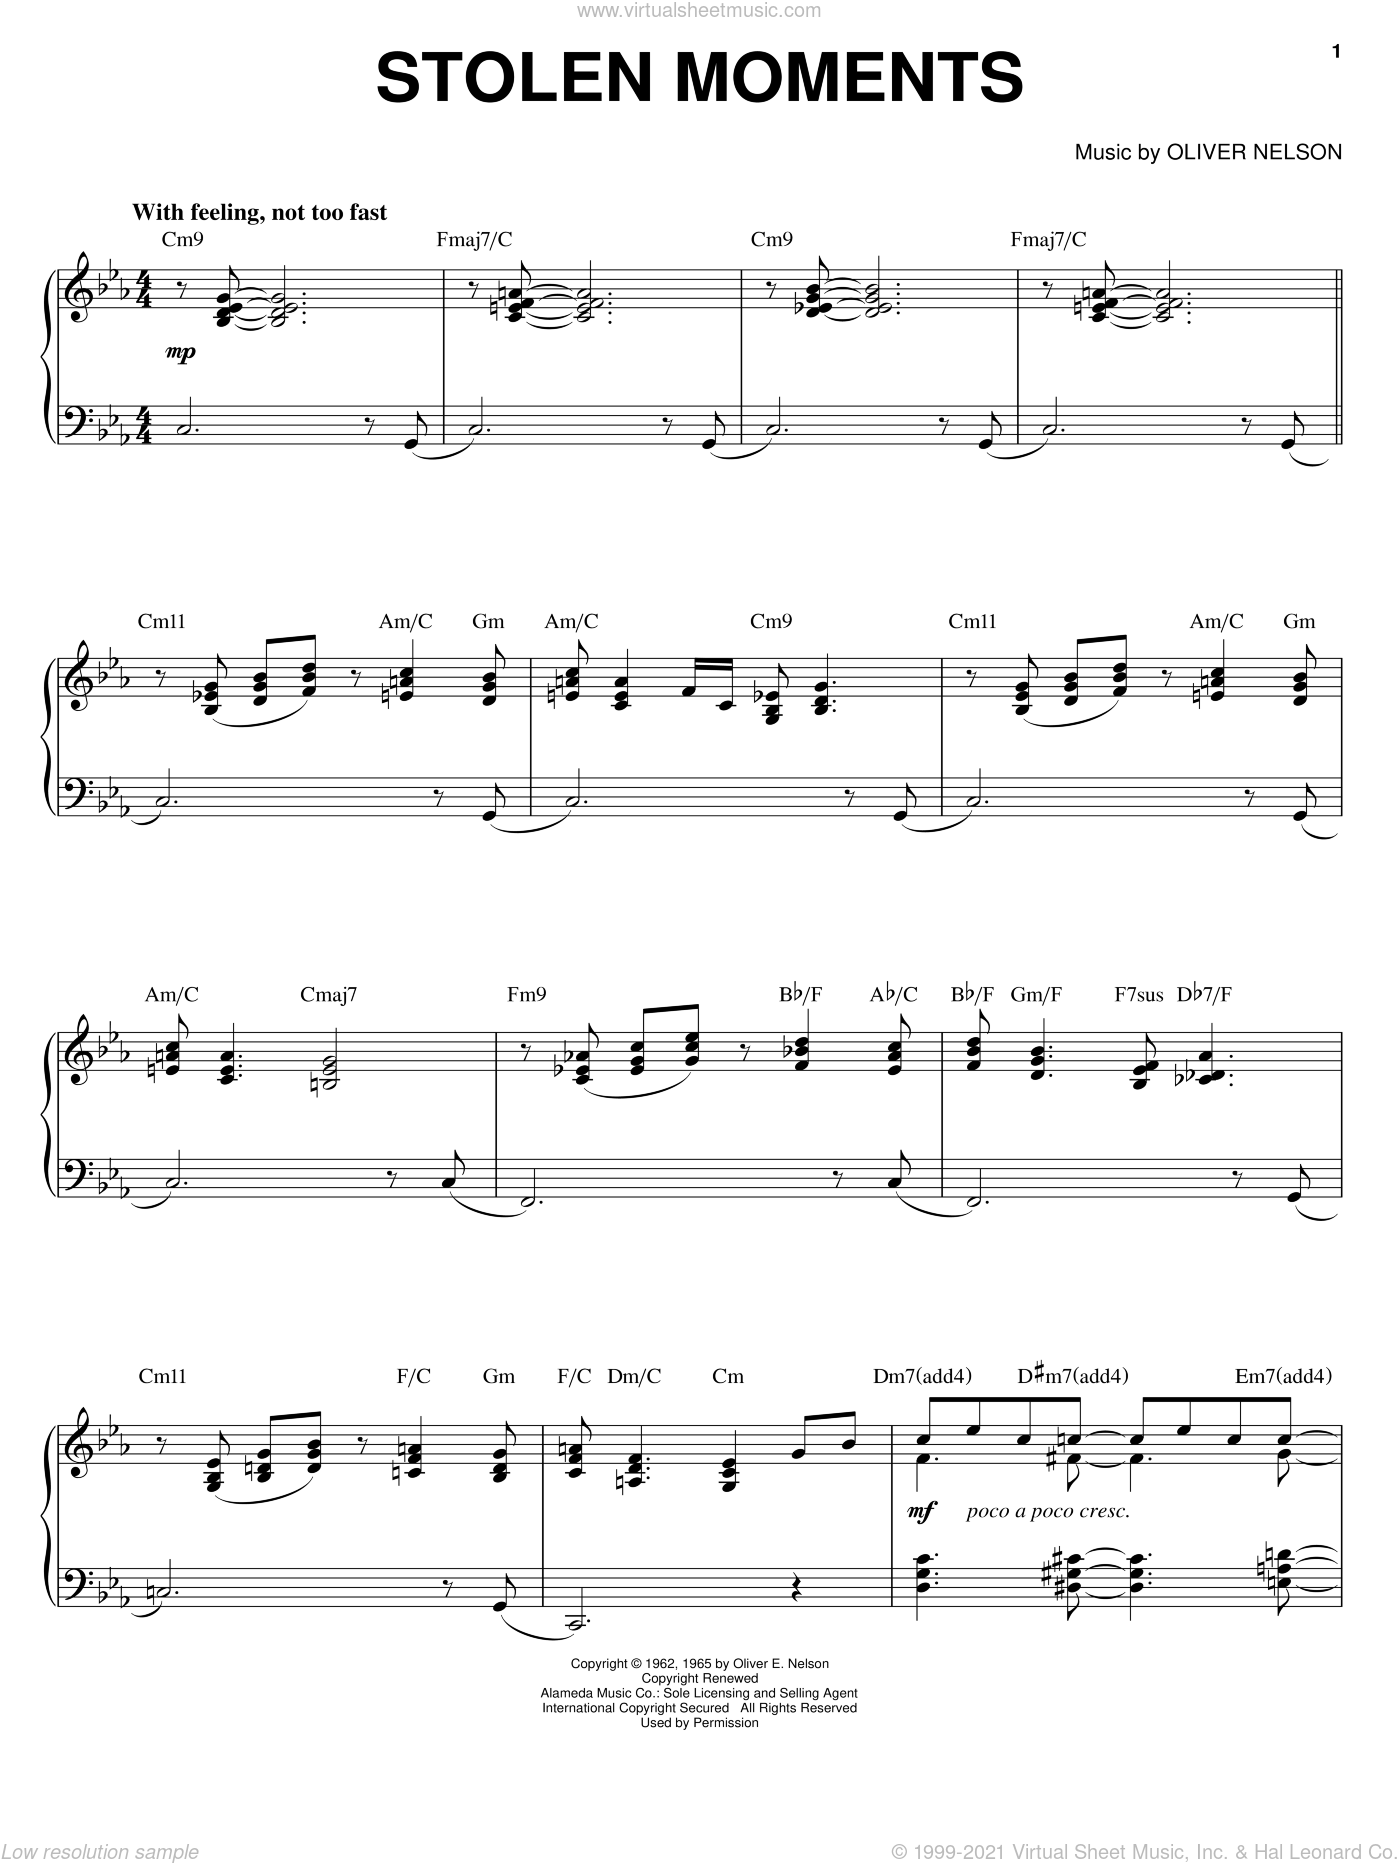 Stolen Moments sheet music for piano solo by Oliver Nelson, intermediate skill level